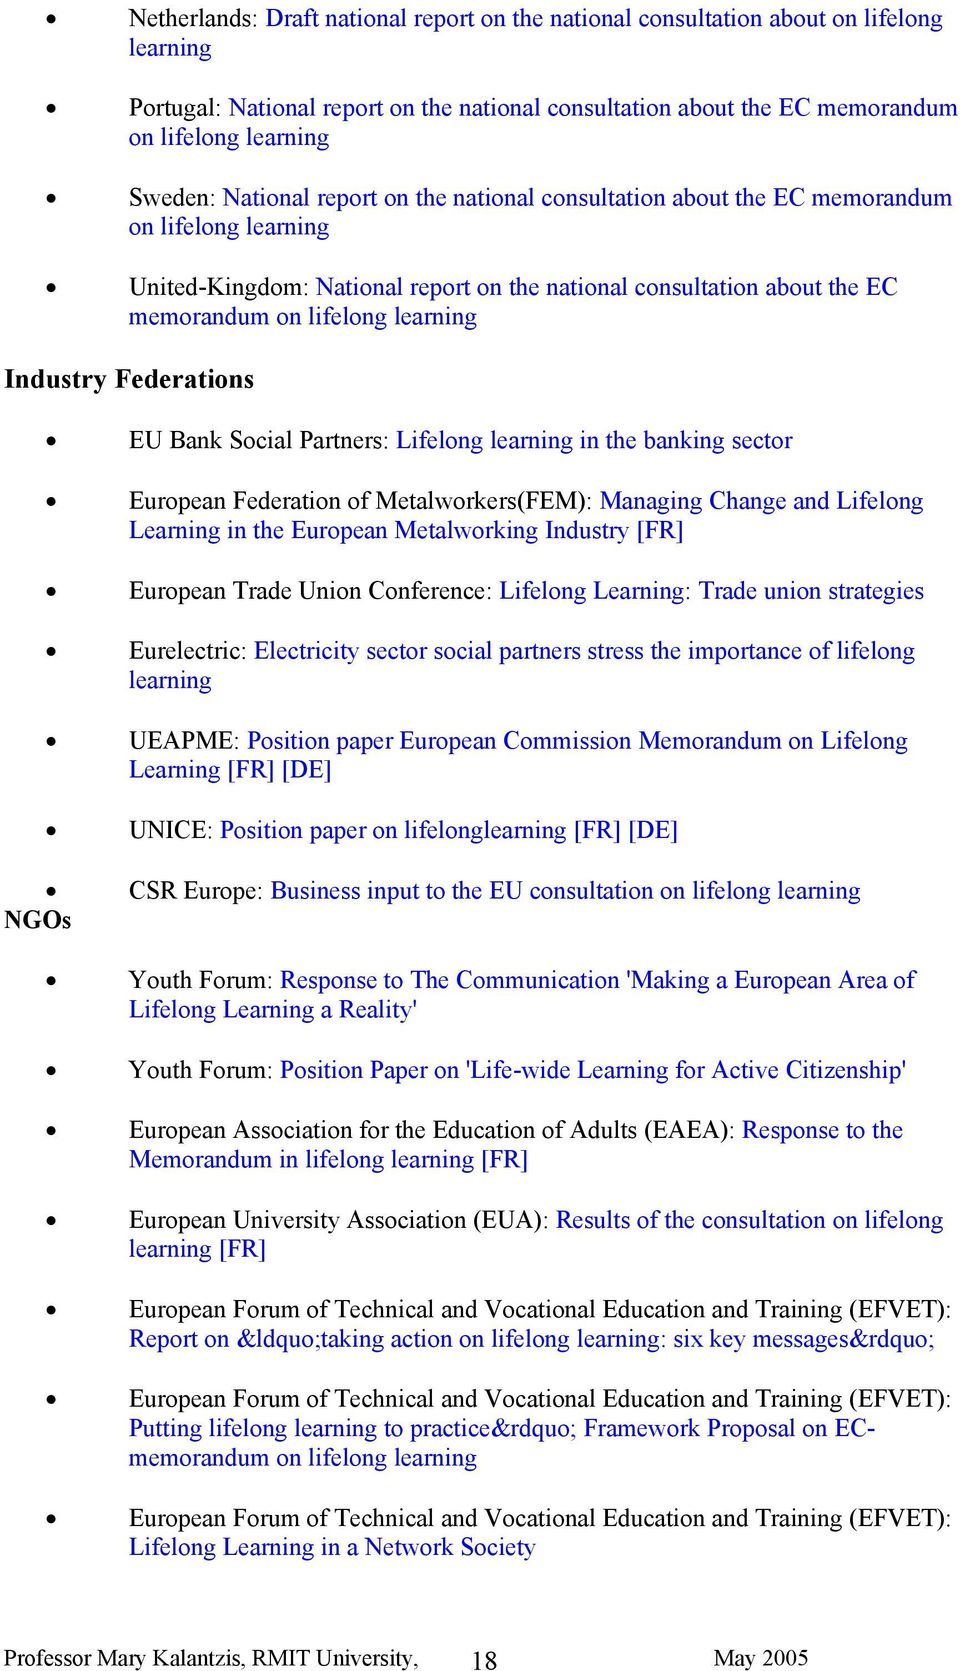 Industry Federations EU Bank Social Partners: Lifelong learning in the banking sector European Federation of Metalworkers(FEM): Managing Change and Lifelong Learning in the European Metalworking